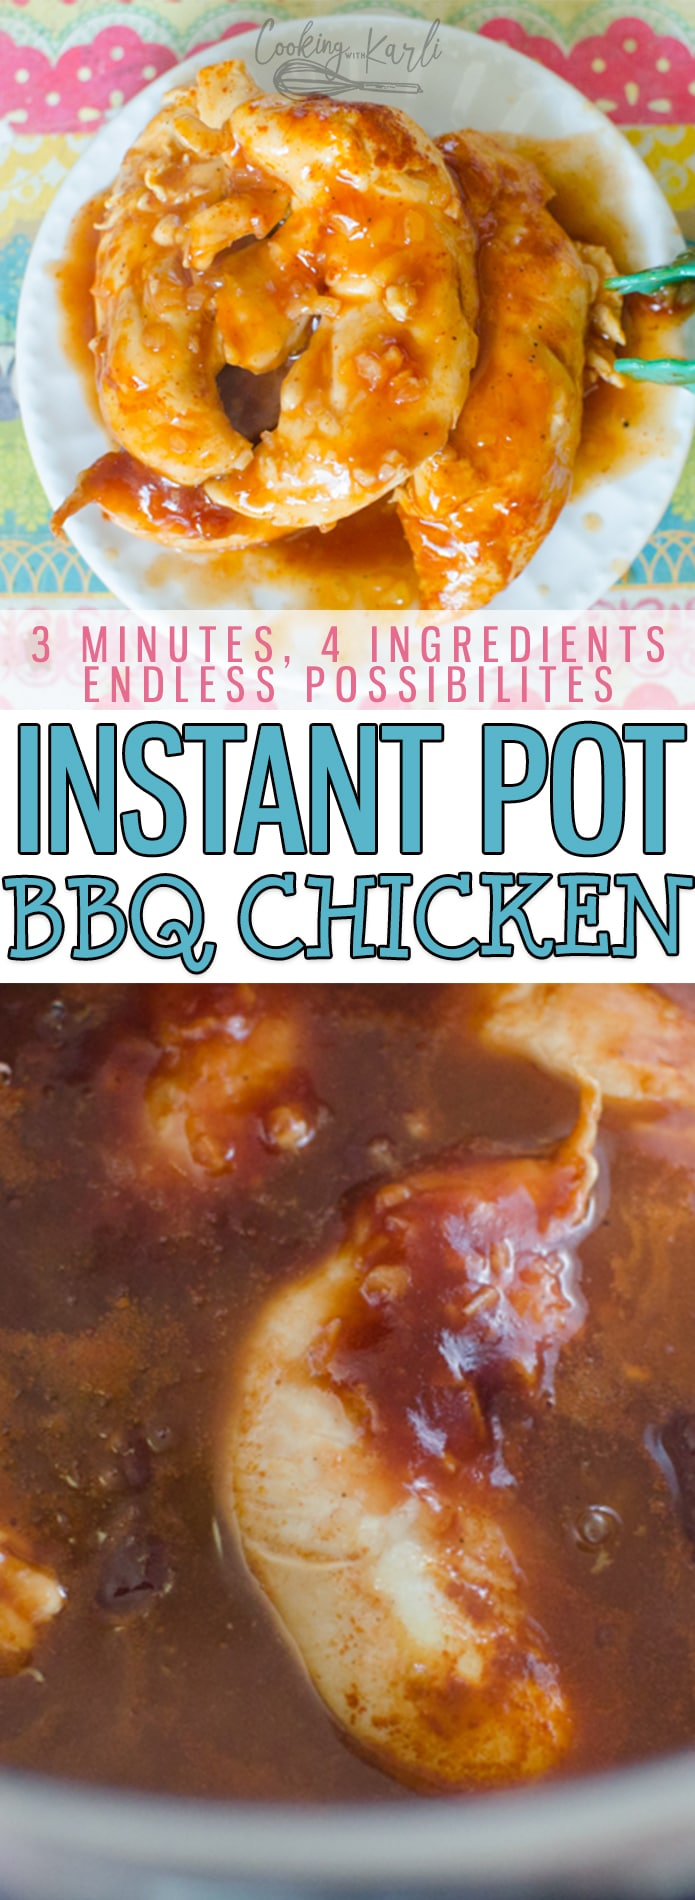 Instant Pot BBQ Chicken is so tender, juicy and full of barbecue flavor. Using Chicken Tenders or Breasts, this BBQ Chicken is extremely versatile. Perfect pulled, sliced or served whole! BBQ Chicken is a perfect, quick weeknight meal that everyone in the family will love! Great all year too, it is just as much of a winter dinner as it is a summer meal. |Cooking with Karli| #instantpot #pressurecooker #recipe #bbq #barbecue #chicken #kid-friendly #easy #fast